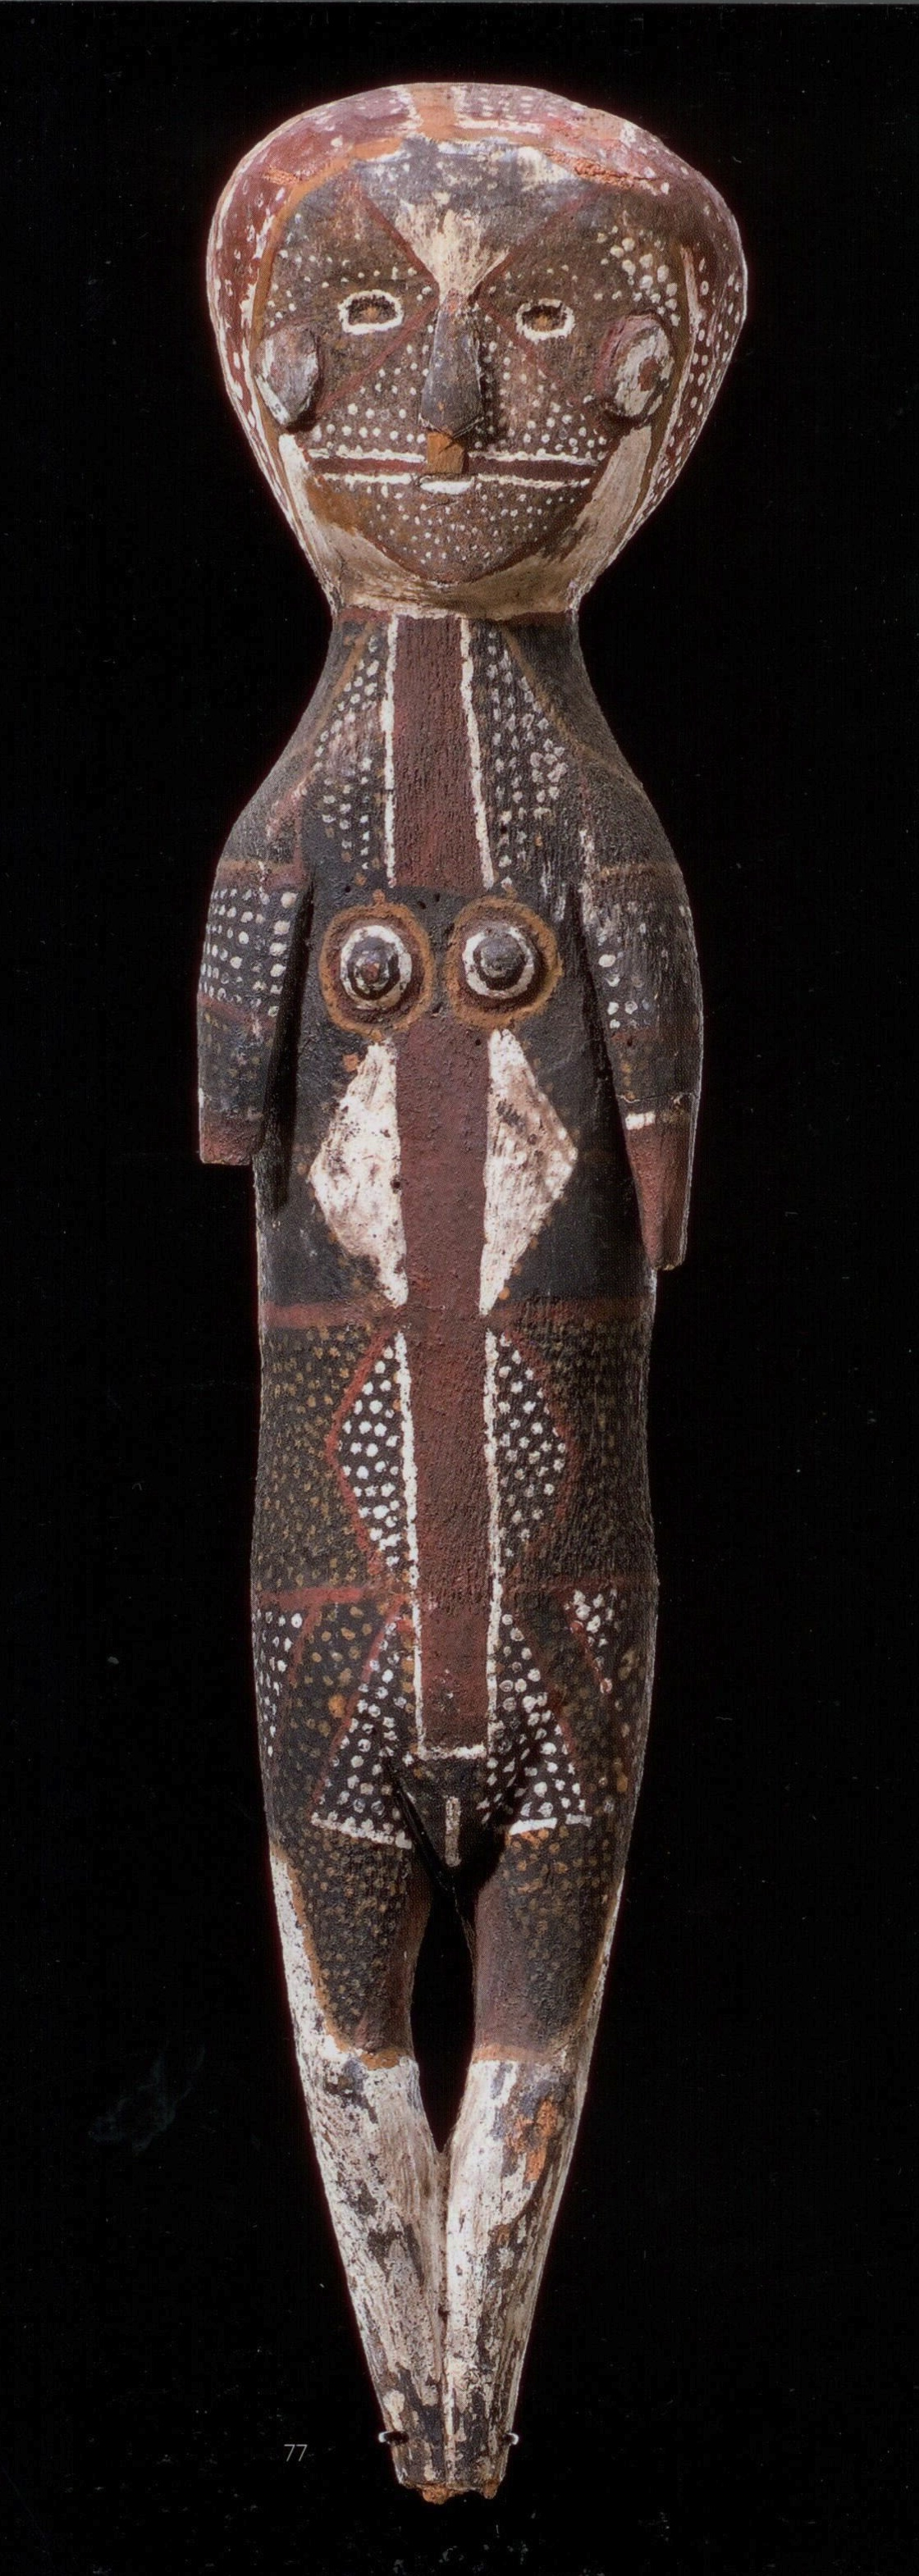 3. Unknown Artist Tiwi female figure